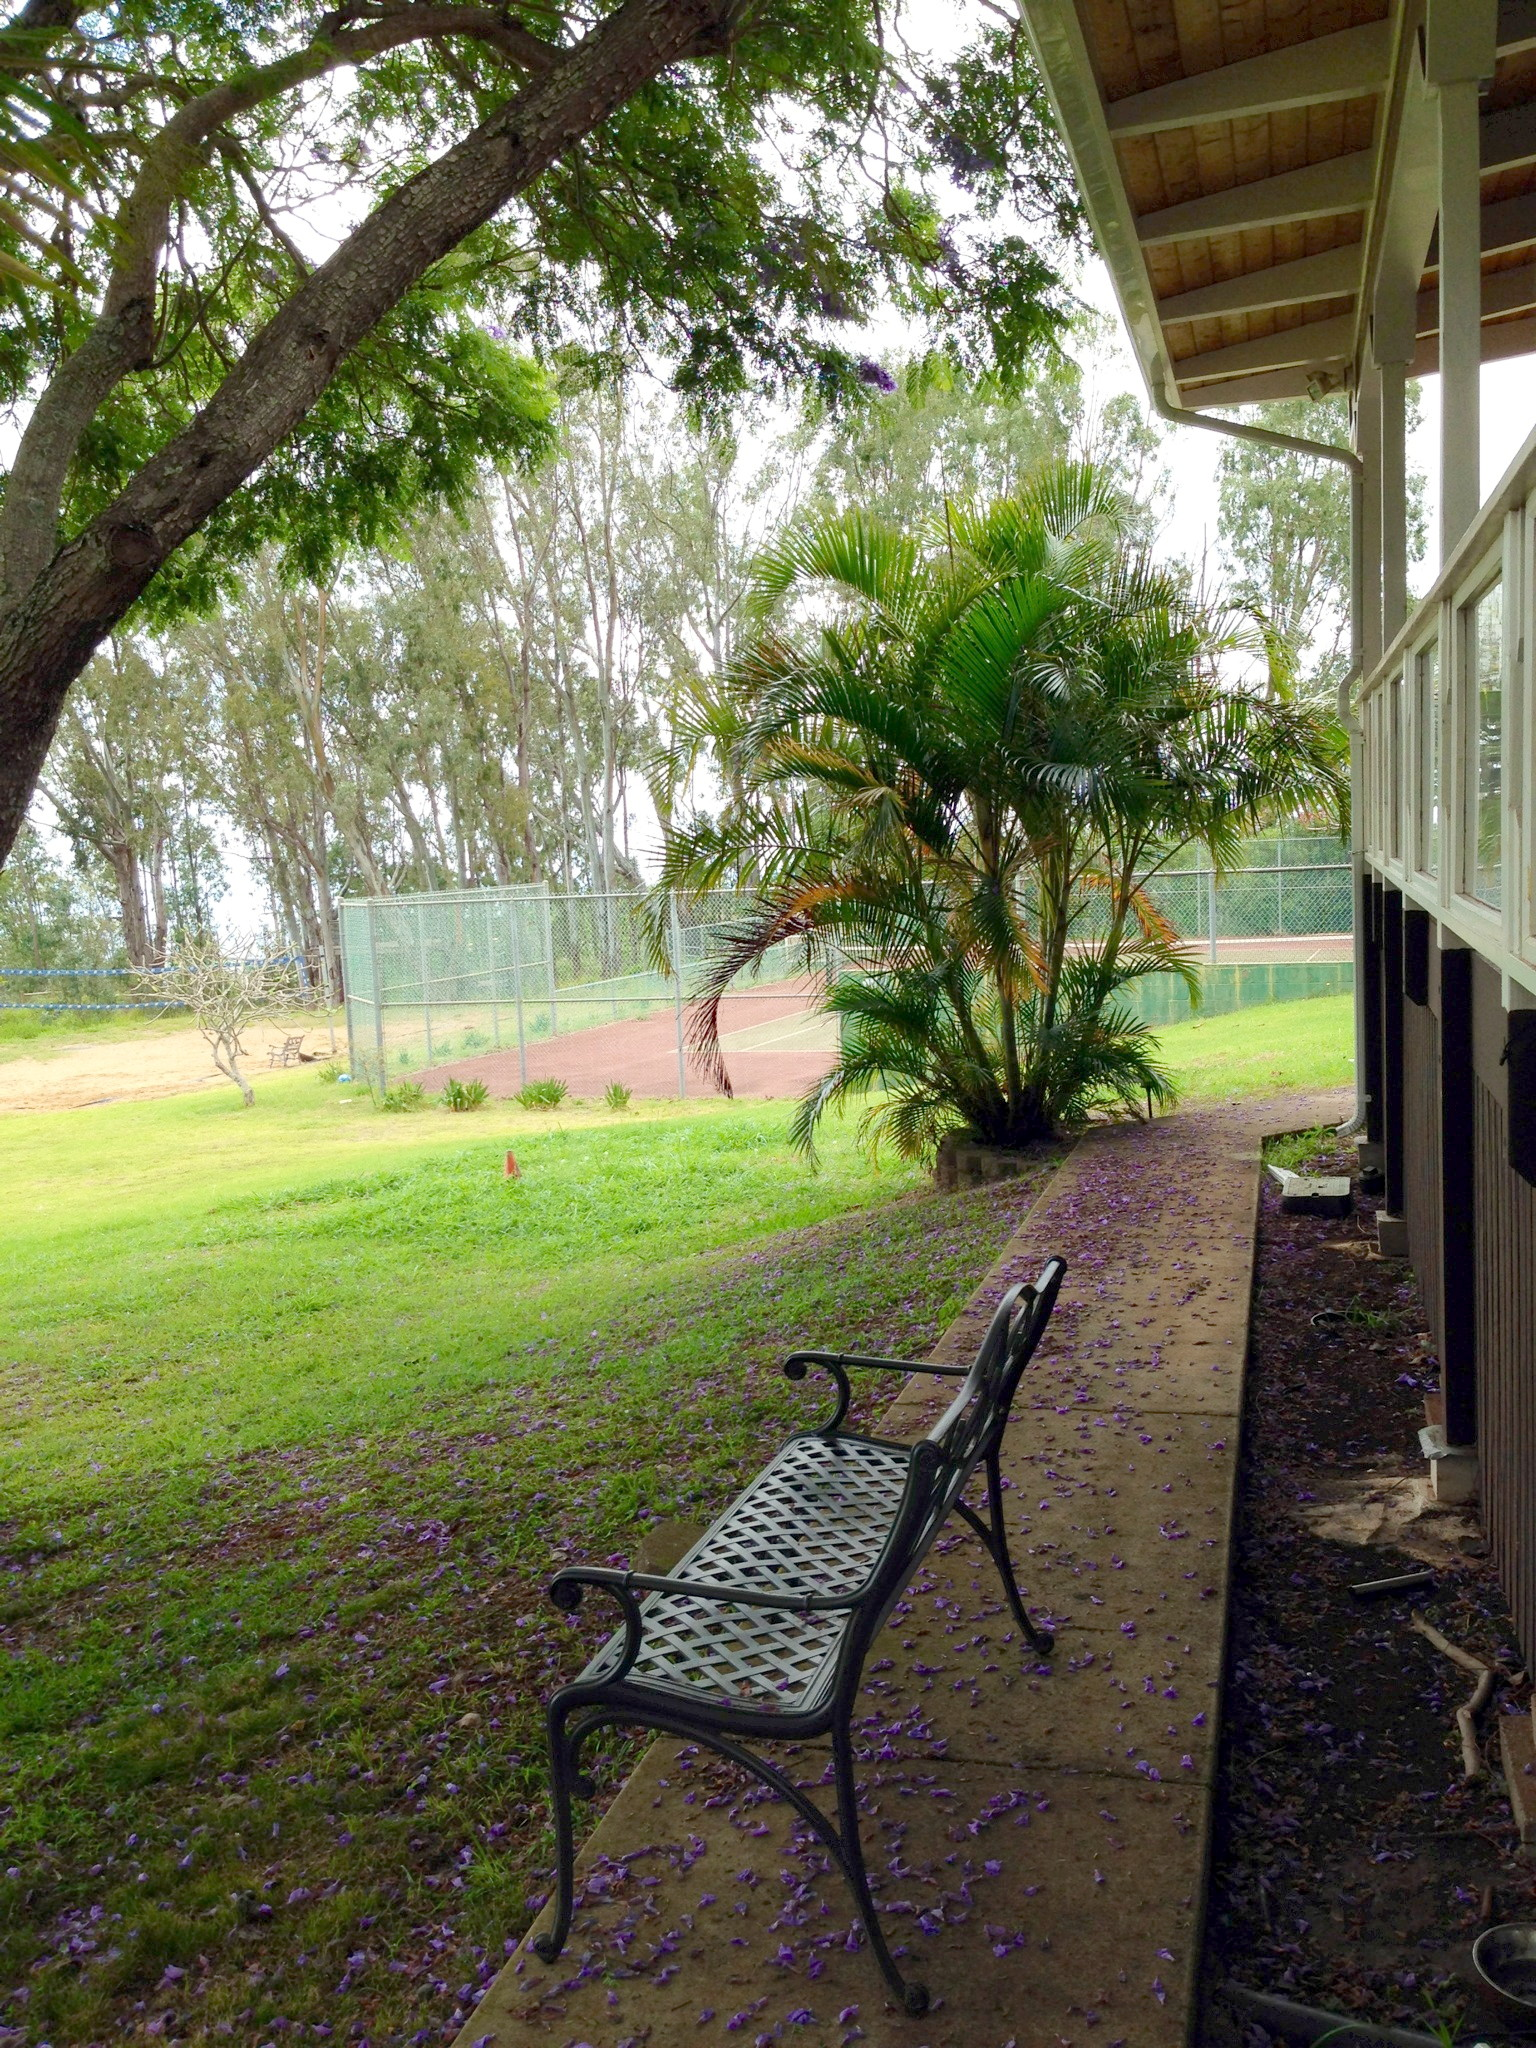 Single Family Home for Sale at The Perfect Upcountry Family Home...In Kula 200 69 Aulii Drive Kula, Hawaii 96790 United States